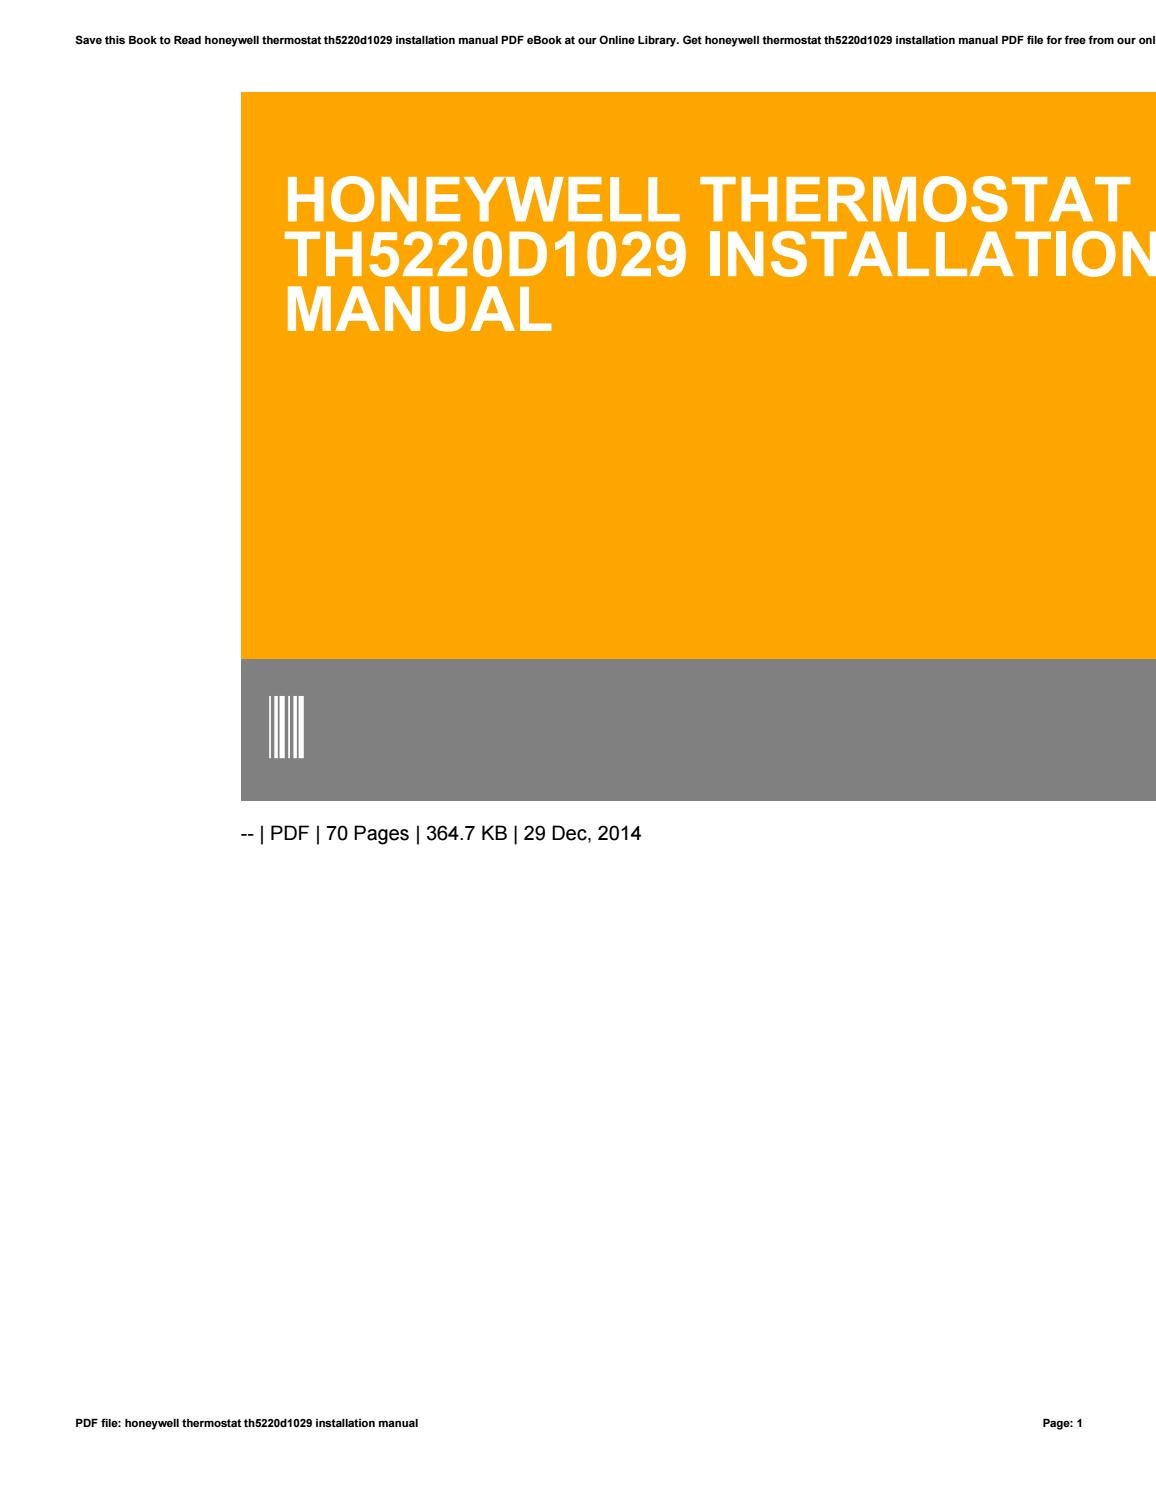 Honeywell Thermostat Th5220d1029 Installation Manual By Munip03asipp Guide Housing And Residence Life Unc Charlotte Issuu